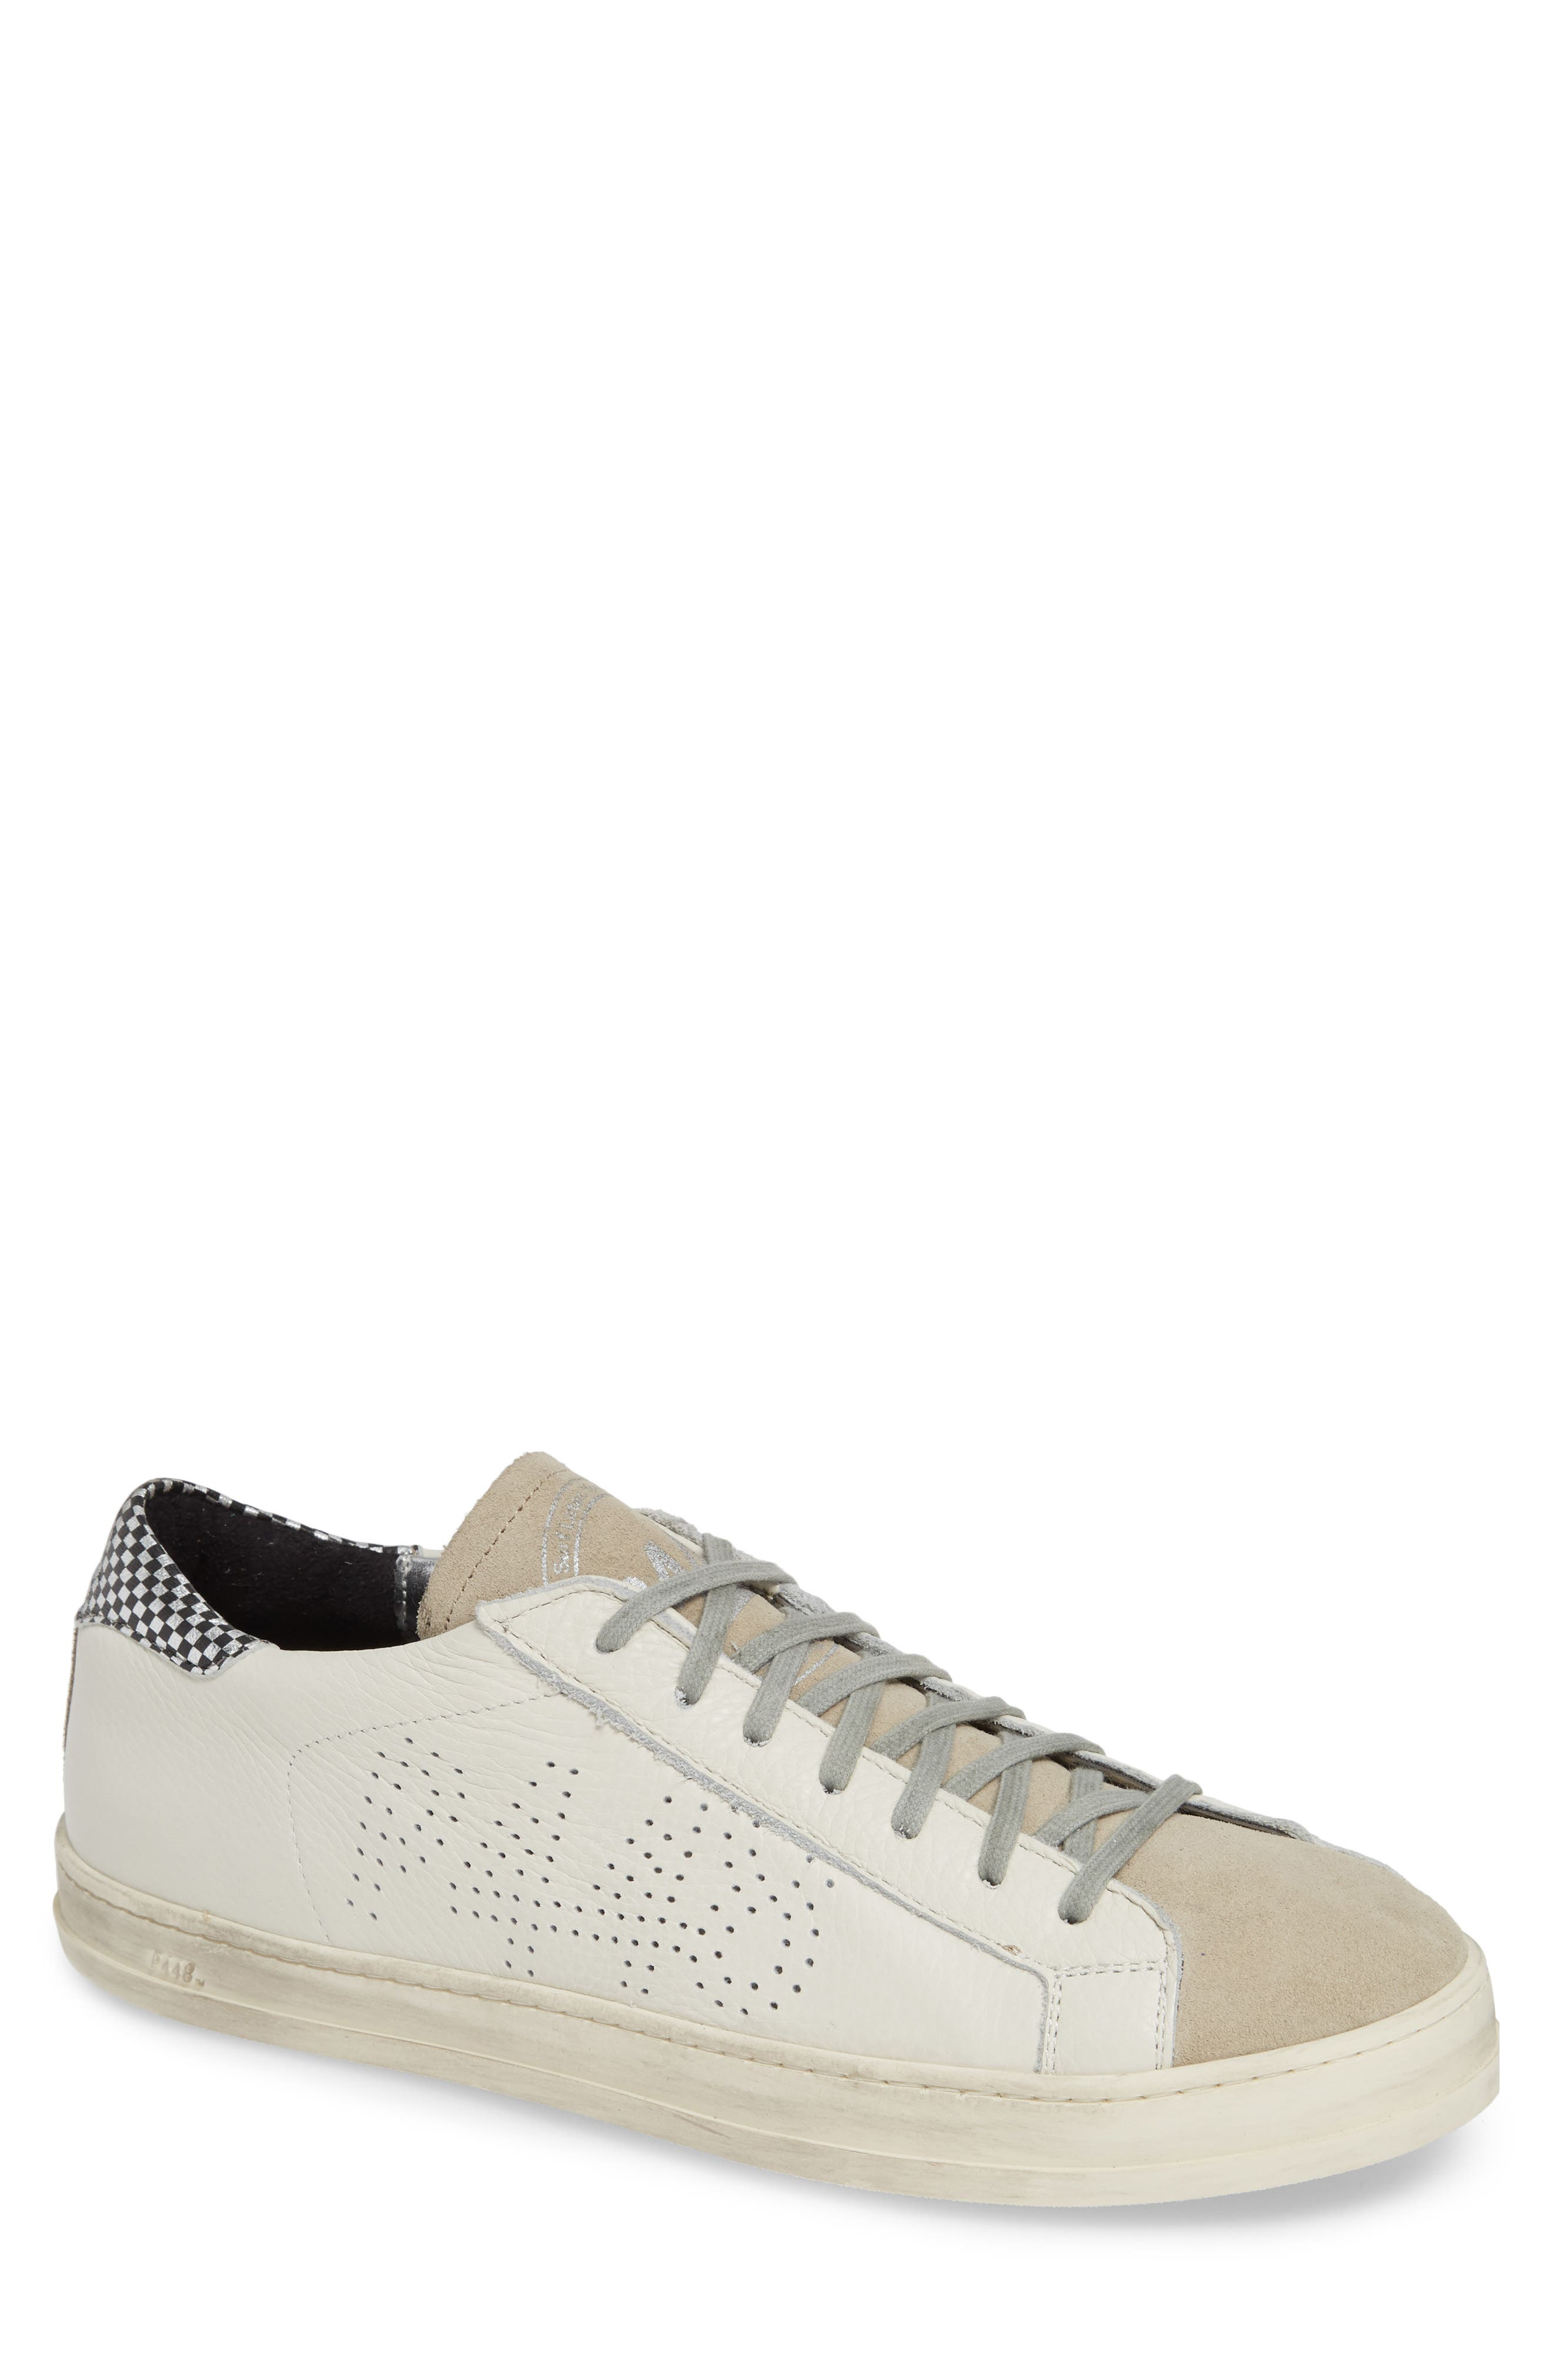 A8John Perforated Sneaker,                             Main thumbnail 1, color,                             WHITE/ WHITE